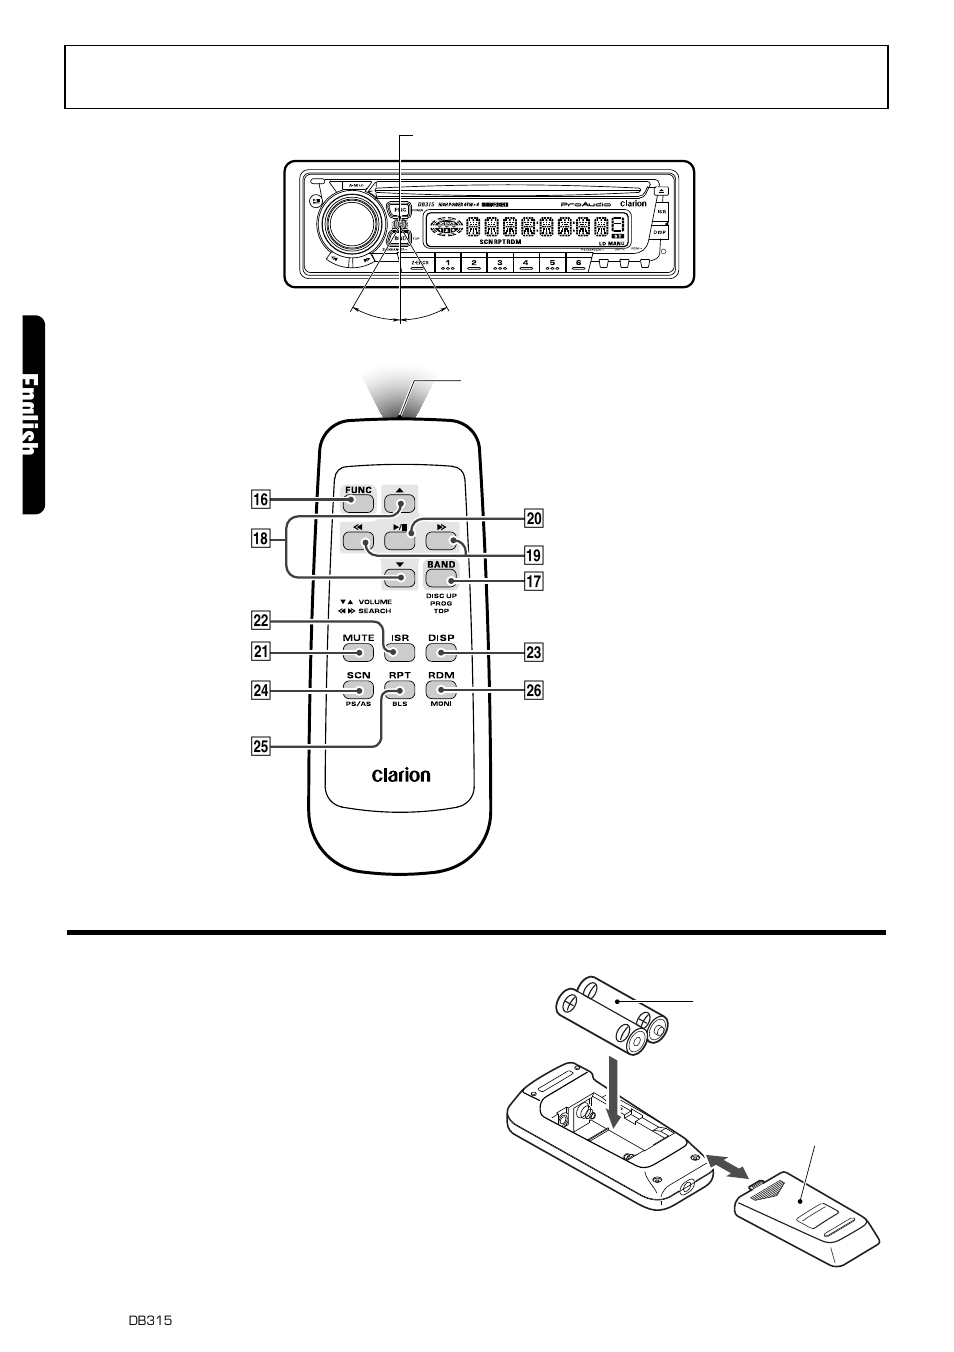 Remote control, English, Inserting the batteries | Clarion DB315 ...